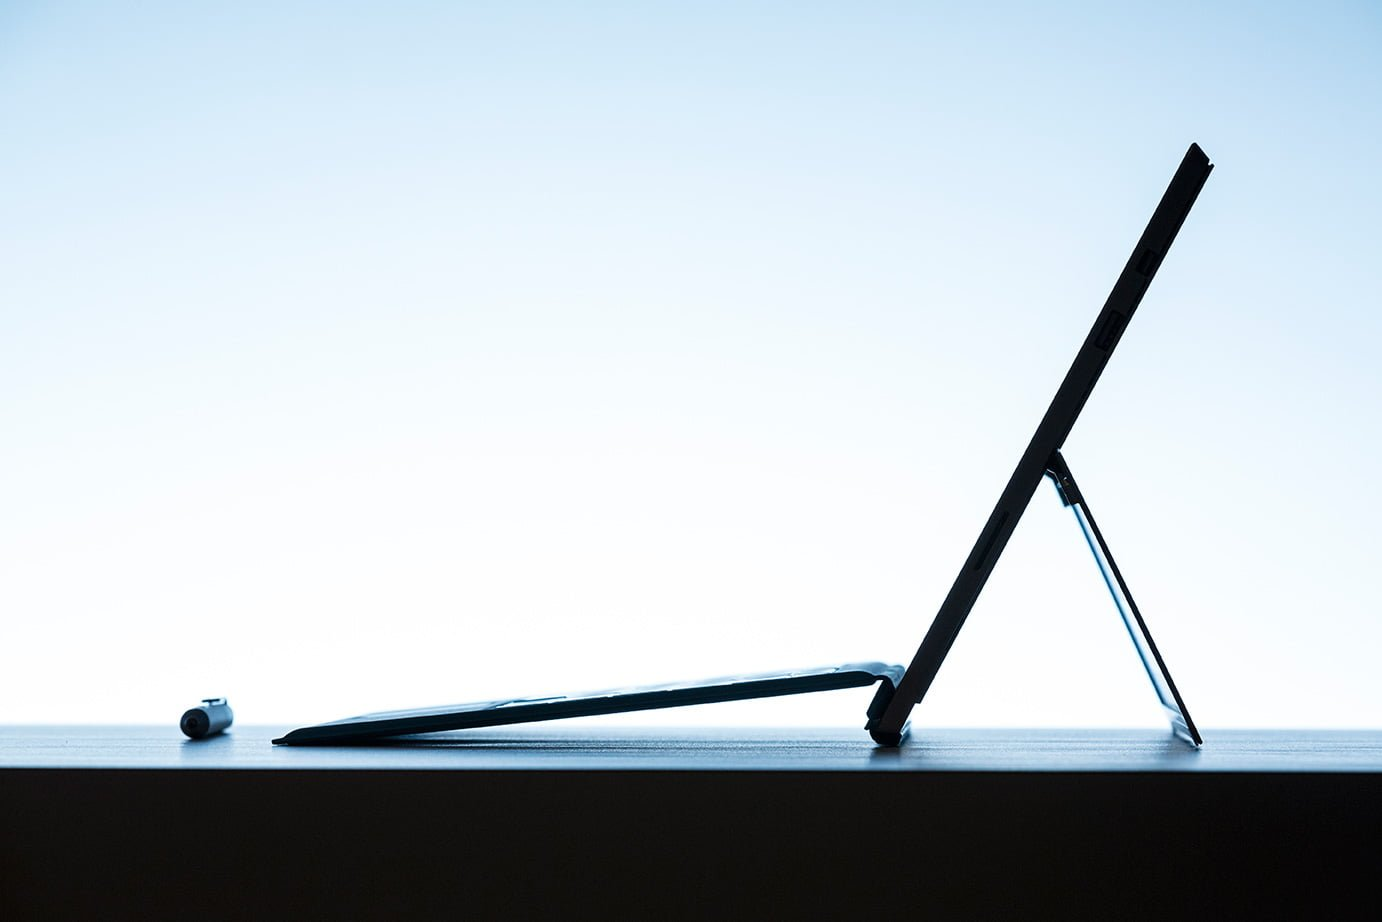 Updated: Surface Pro 3 Guides and support site go live alongside retail availability